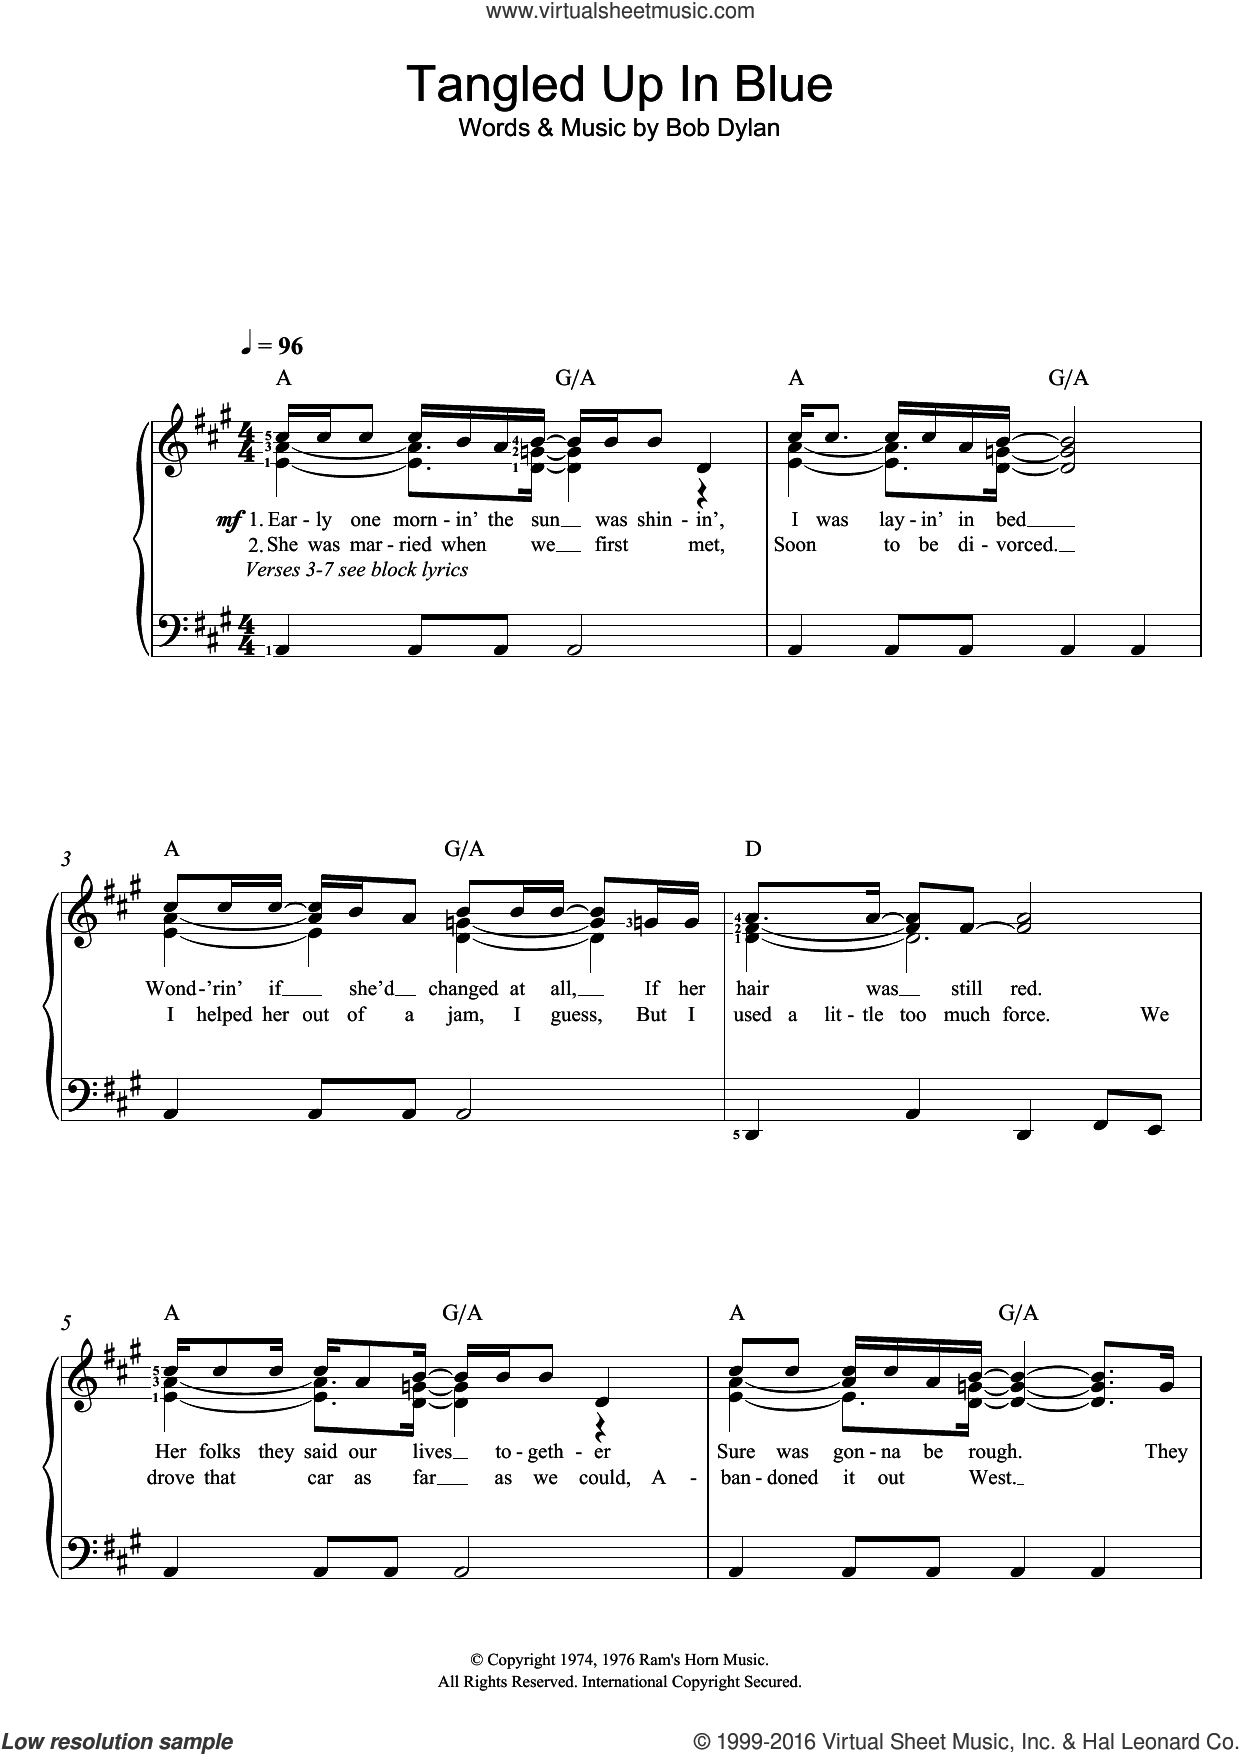 Dylan   Tangled Up In Blue sheet music for voice and piano [PDF]